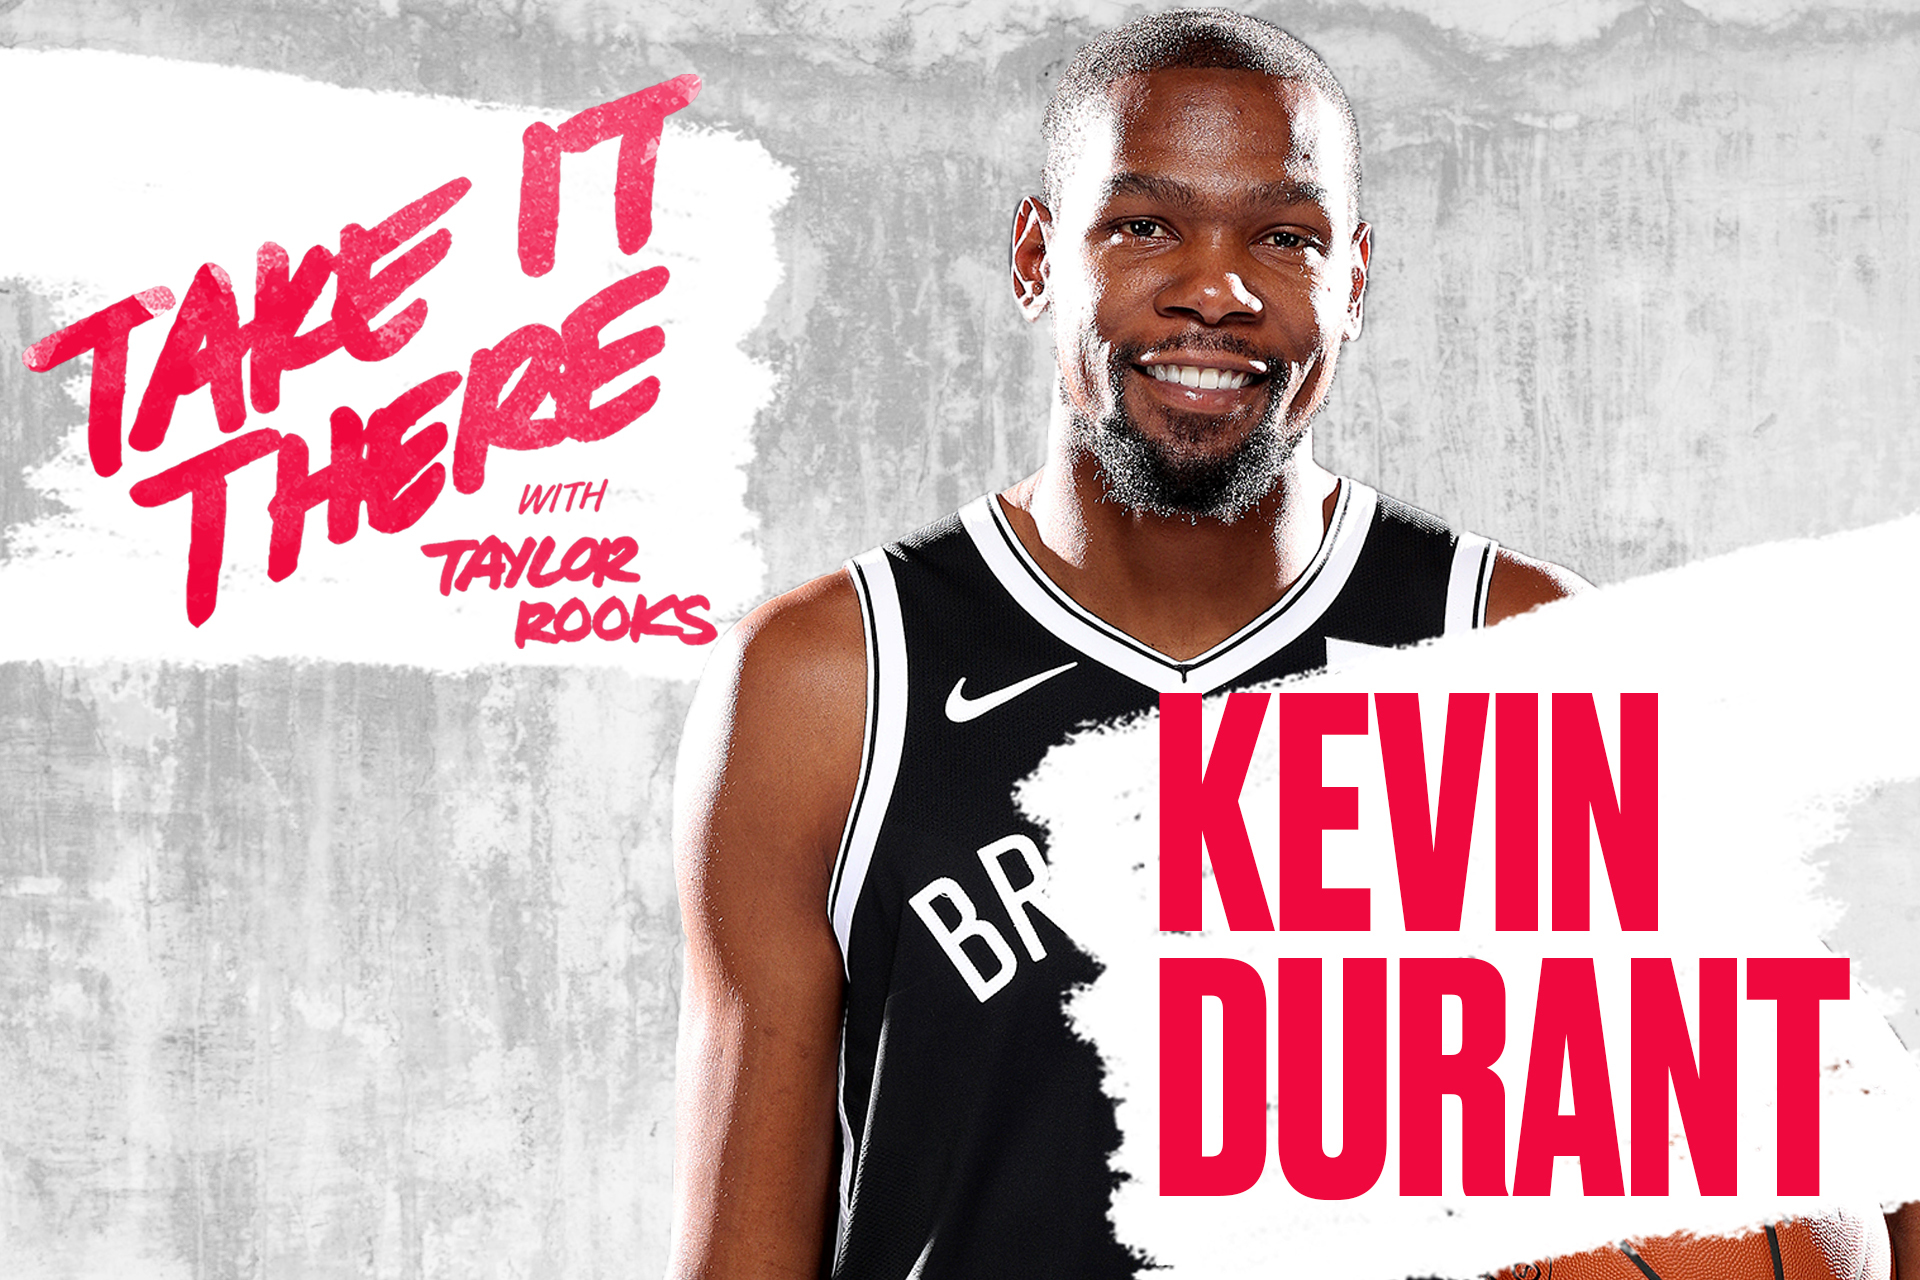 Kevin Durant Explains His Old Tweets   Take It There with Taylor Rooks S2E2